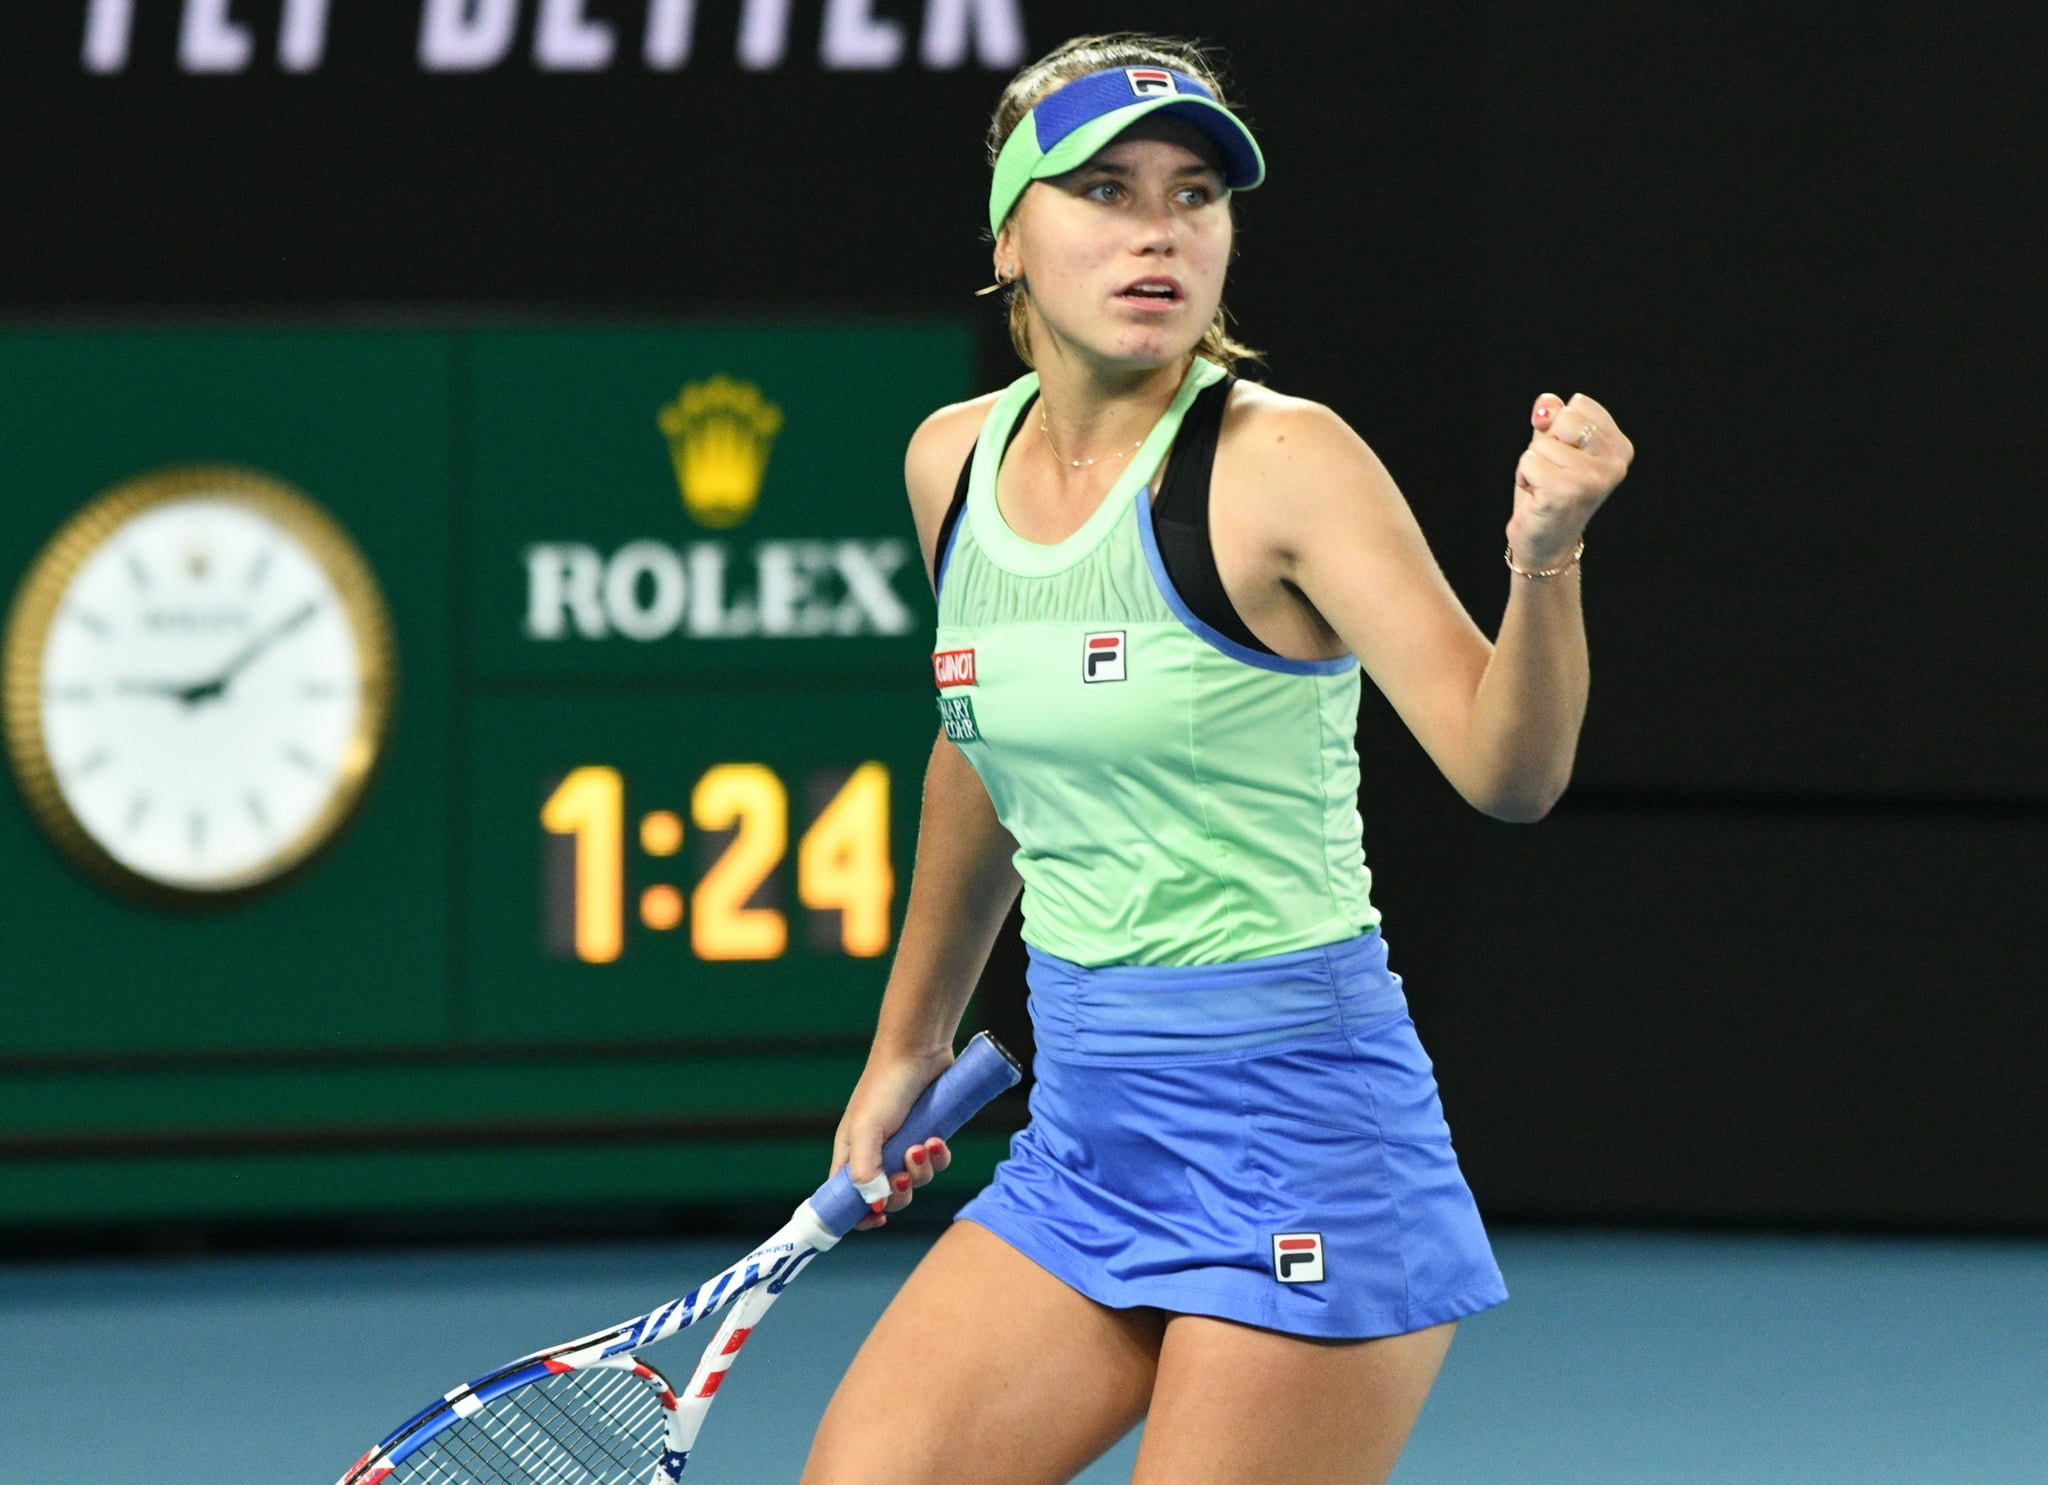 MELBOURNE, AUSTRALIA - FEBRUARY 01: The U.S.A Sofia Kenin wins the 2020 Australian Open after beating Garbine Muguruza (not seen) of Spain 2-1 to claim the first grand slam title in her career in Melbourne, Australia on February 01, 2020. (Photo by Recep Sakar/Anadolu Agency via Getty Images)